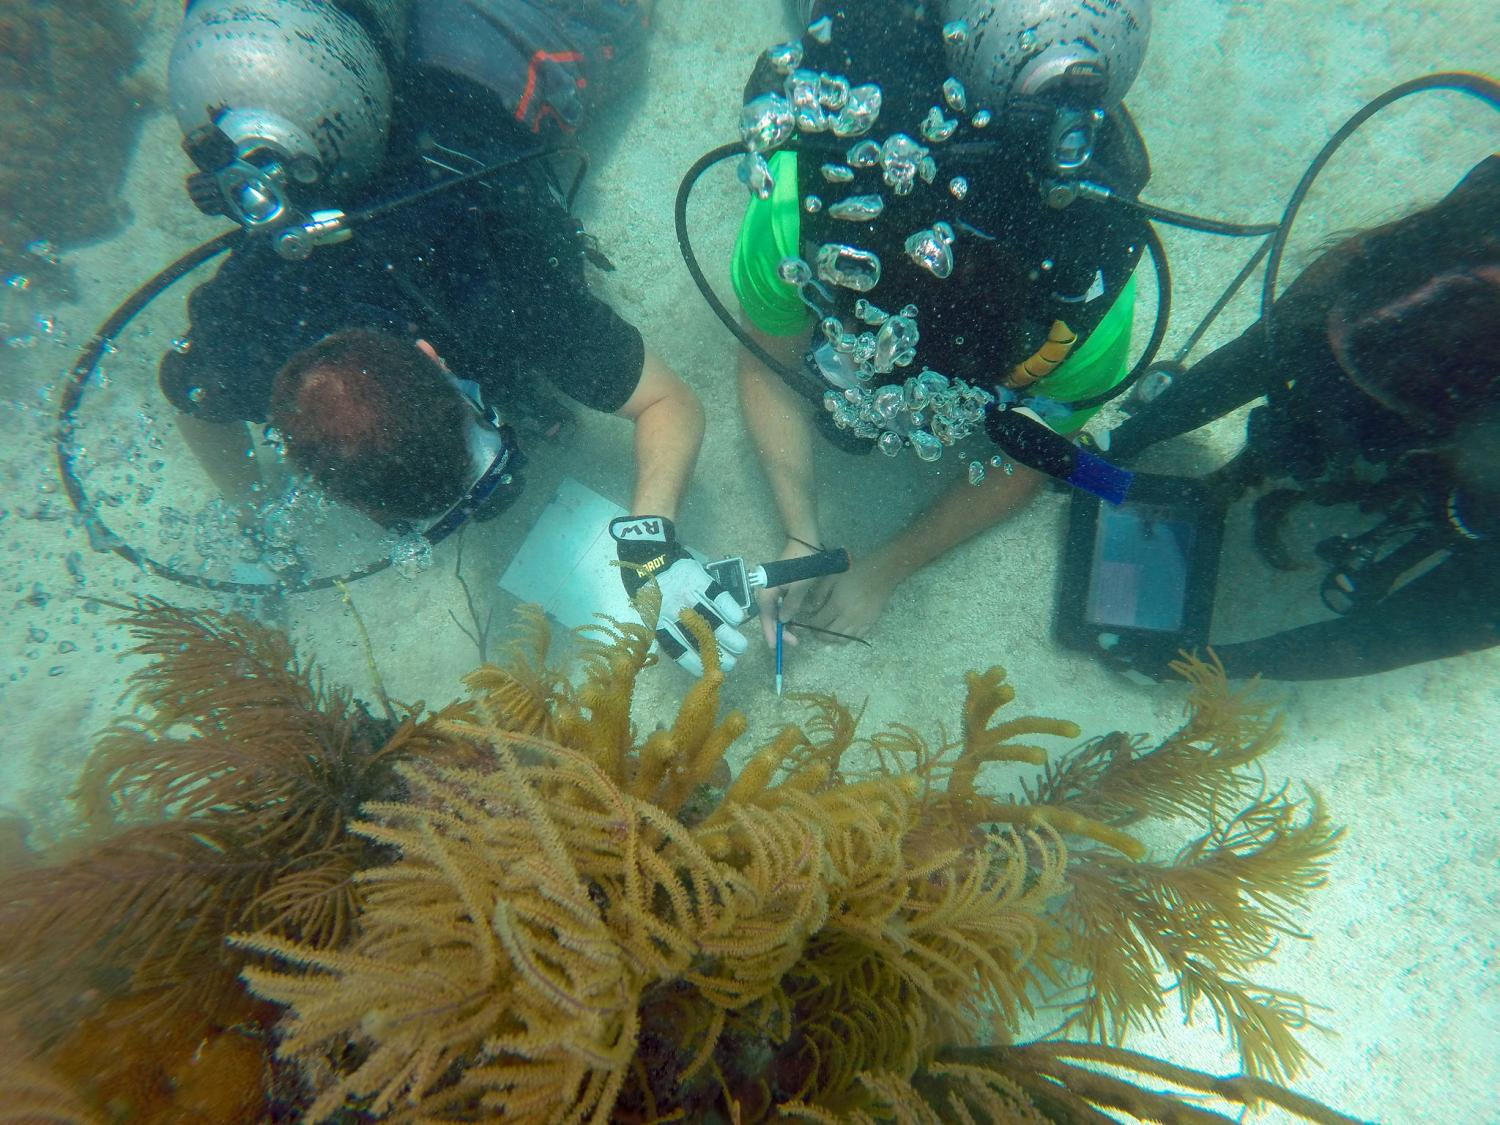 NASA Trains Astronauts Underwater For The Mars Mission